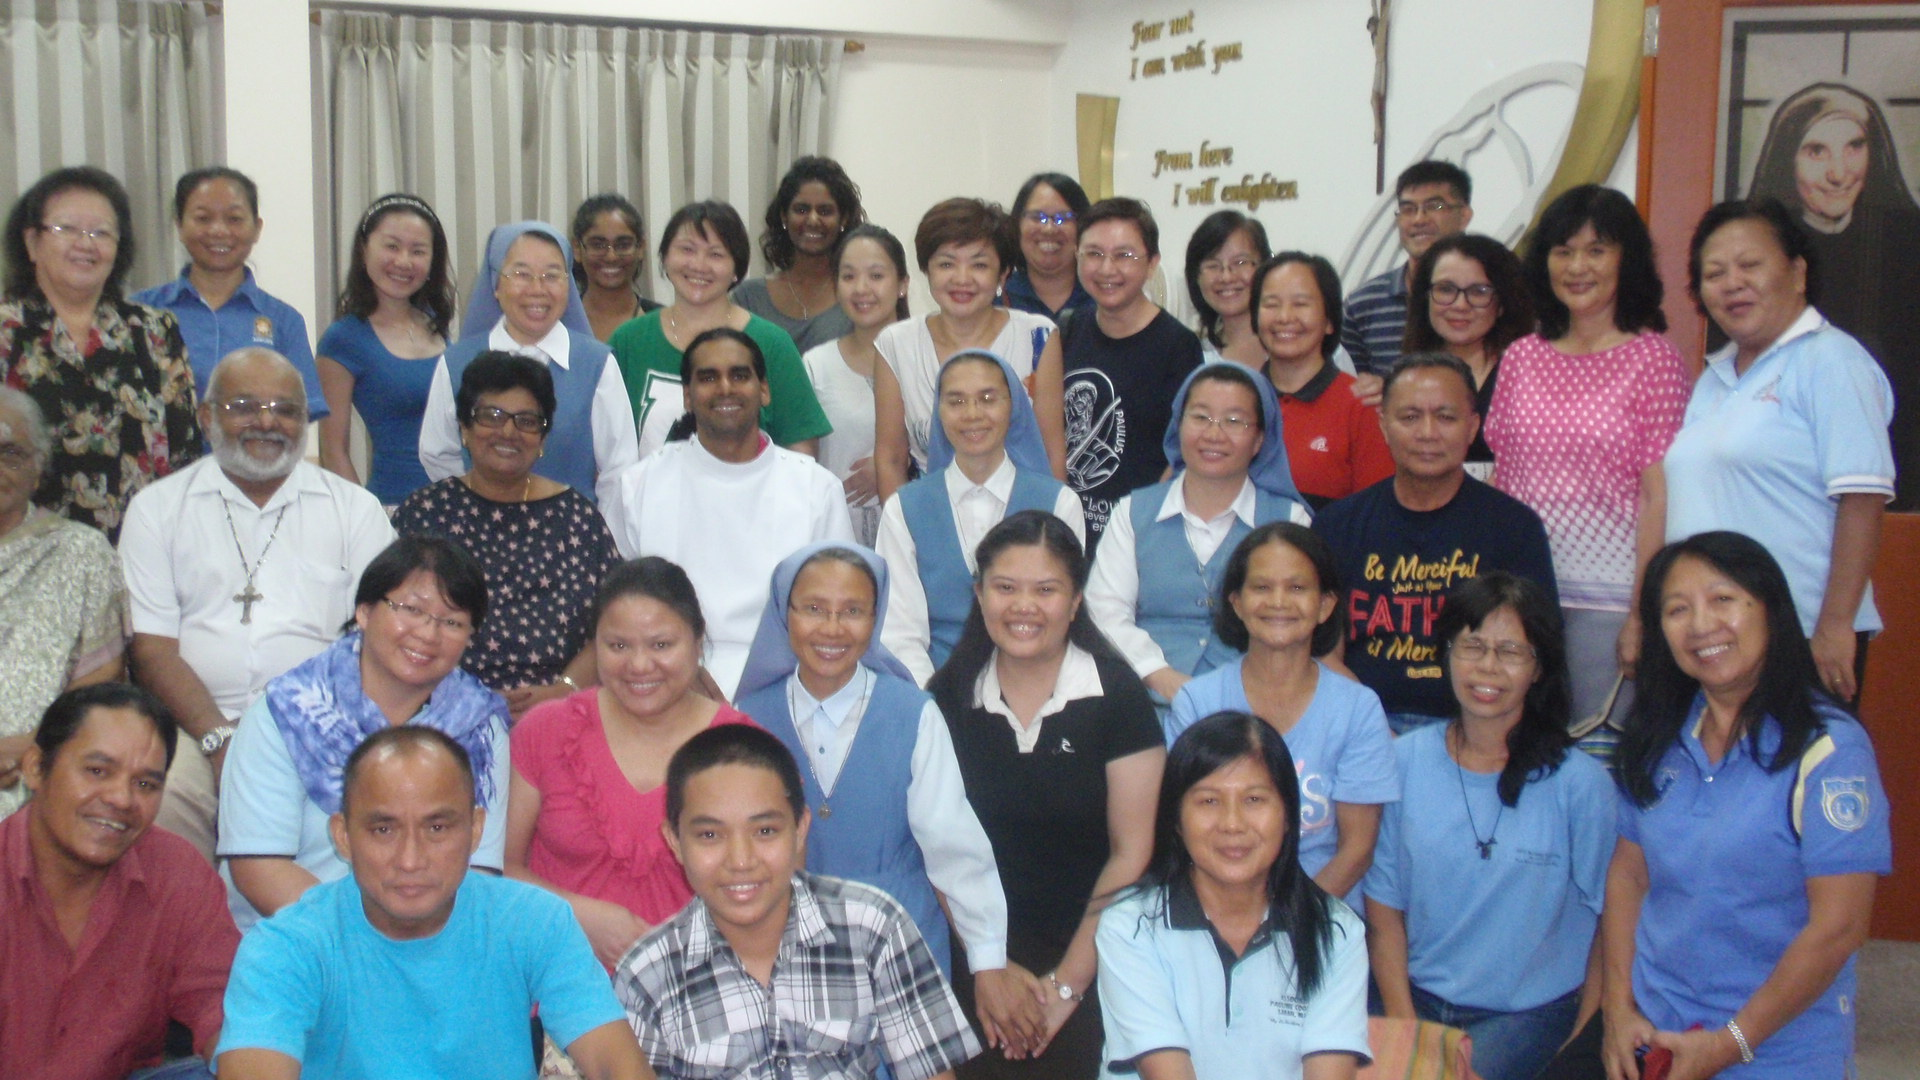 A section of the group taken at the end of Mass.